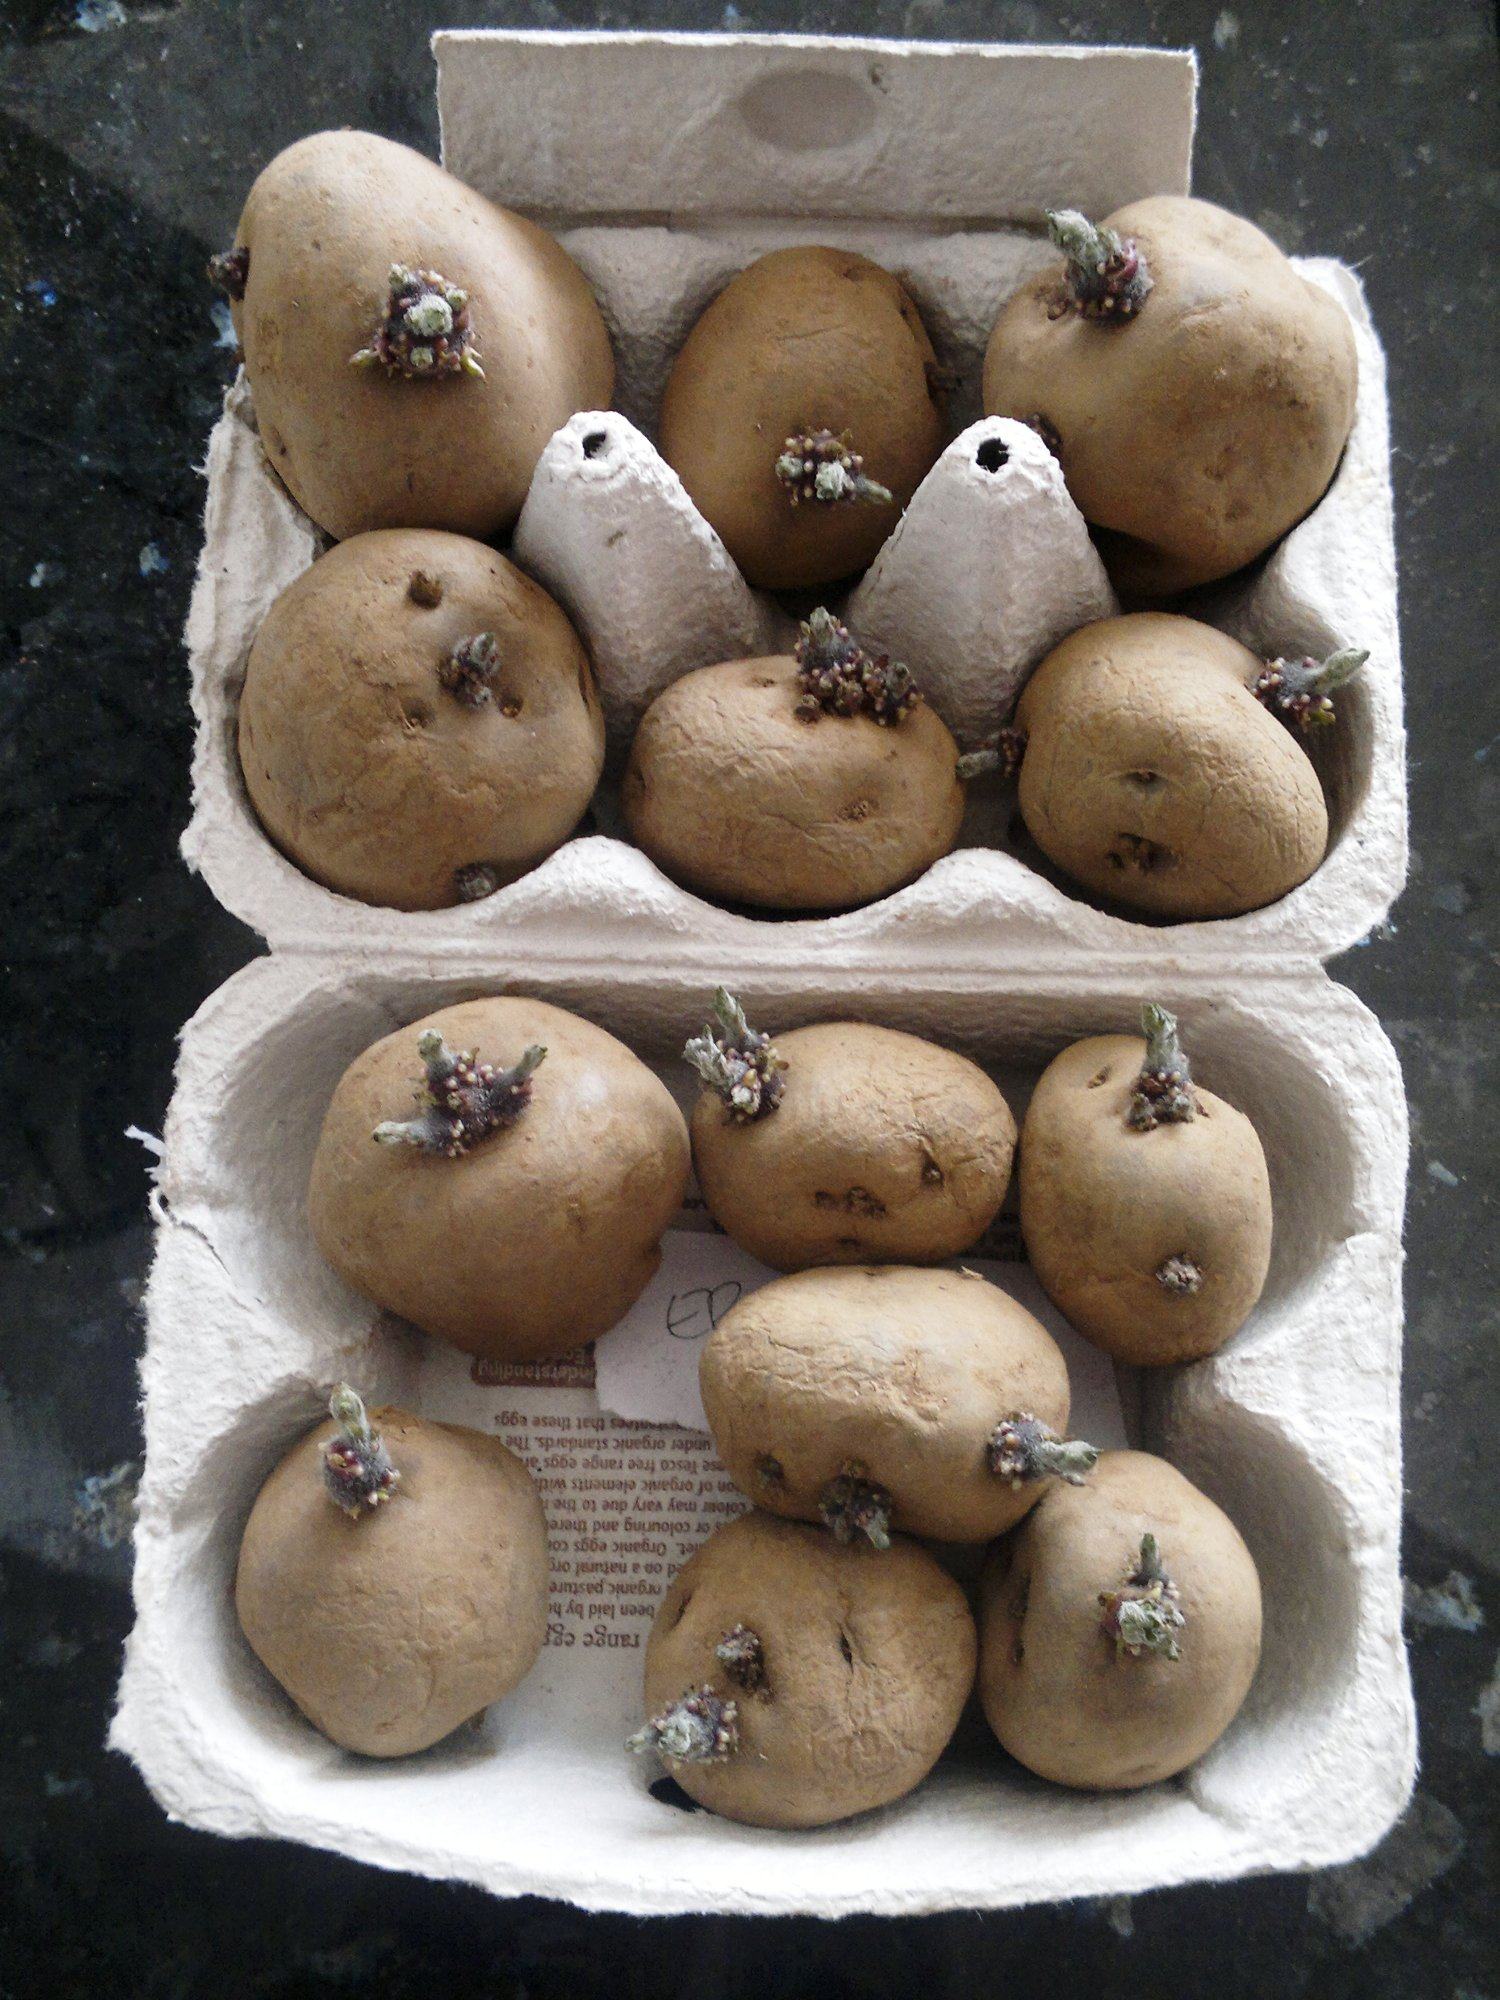 Seed potatoes chitting nicely